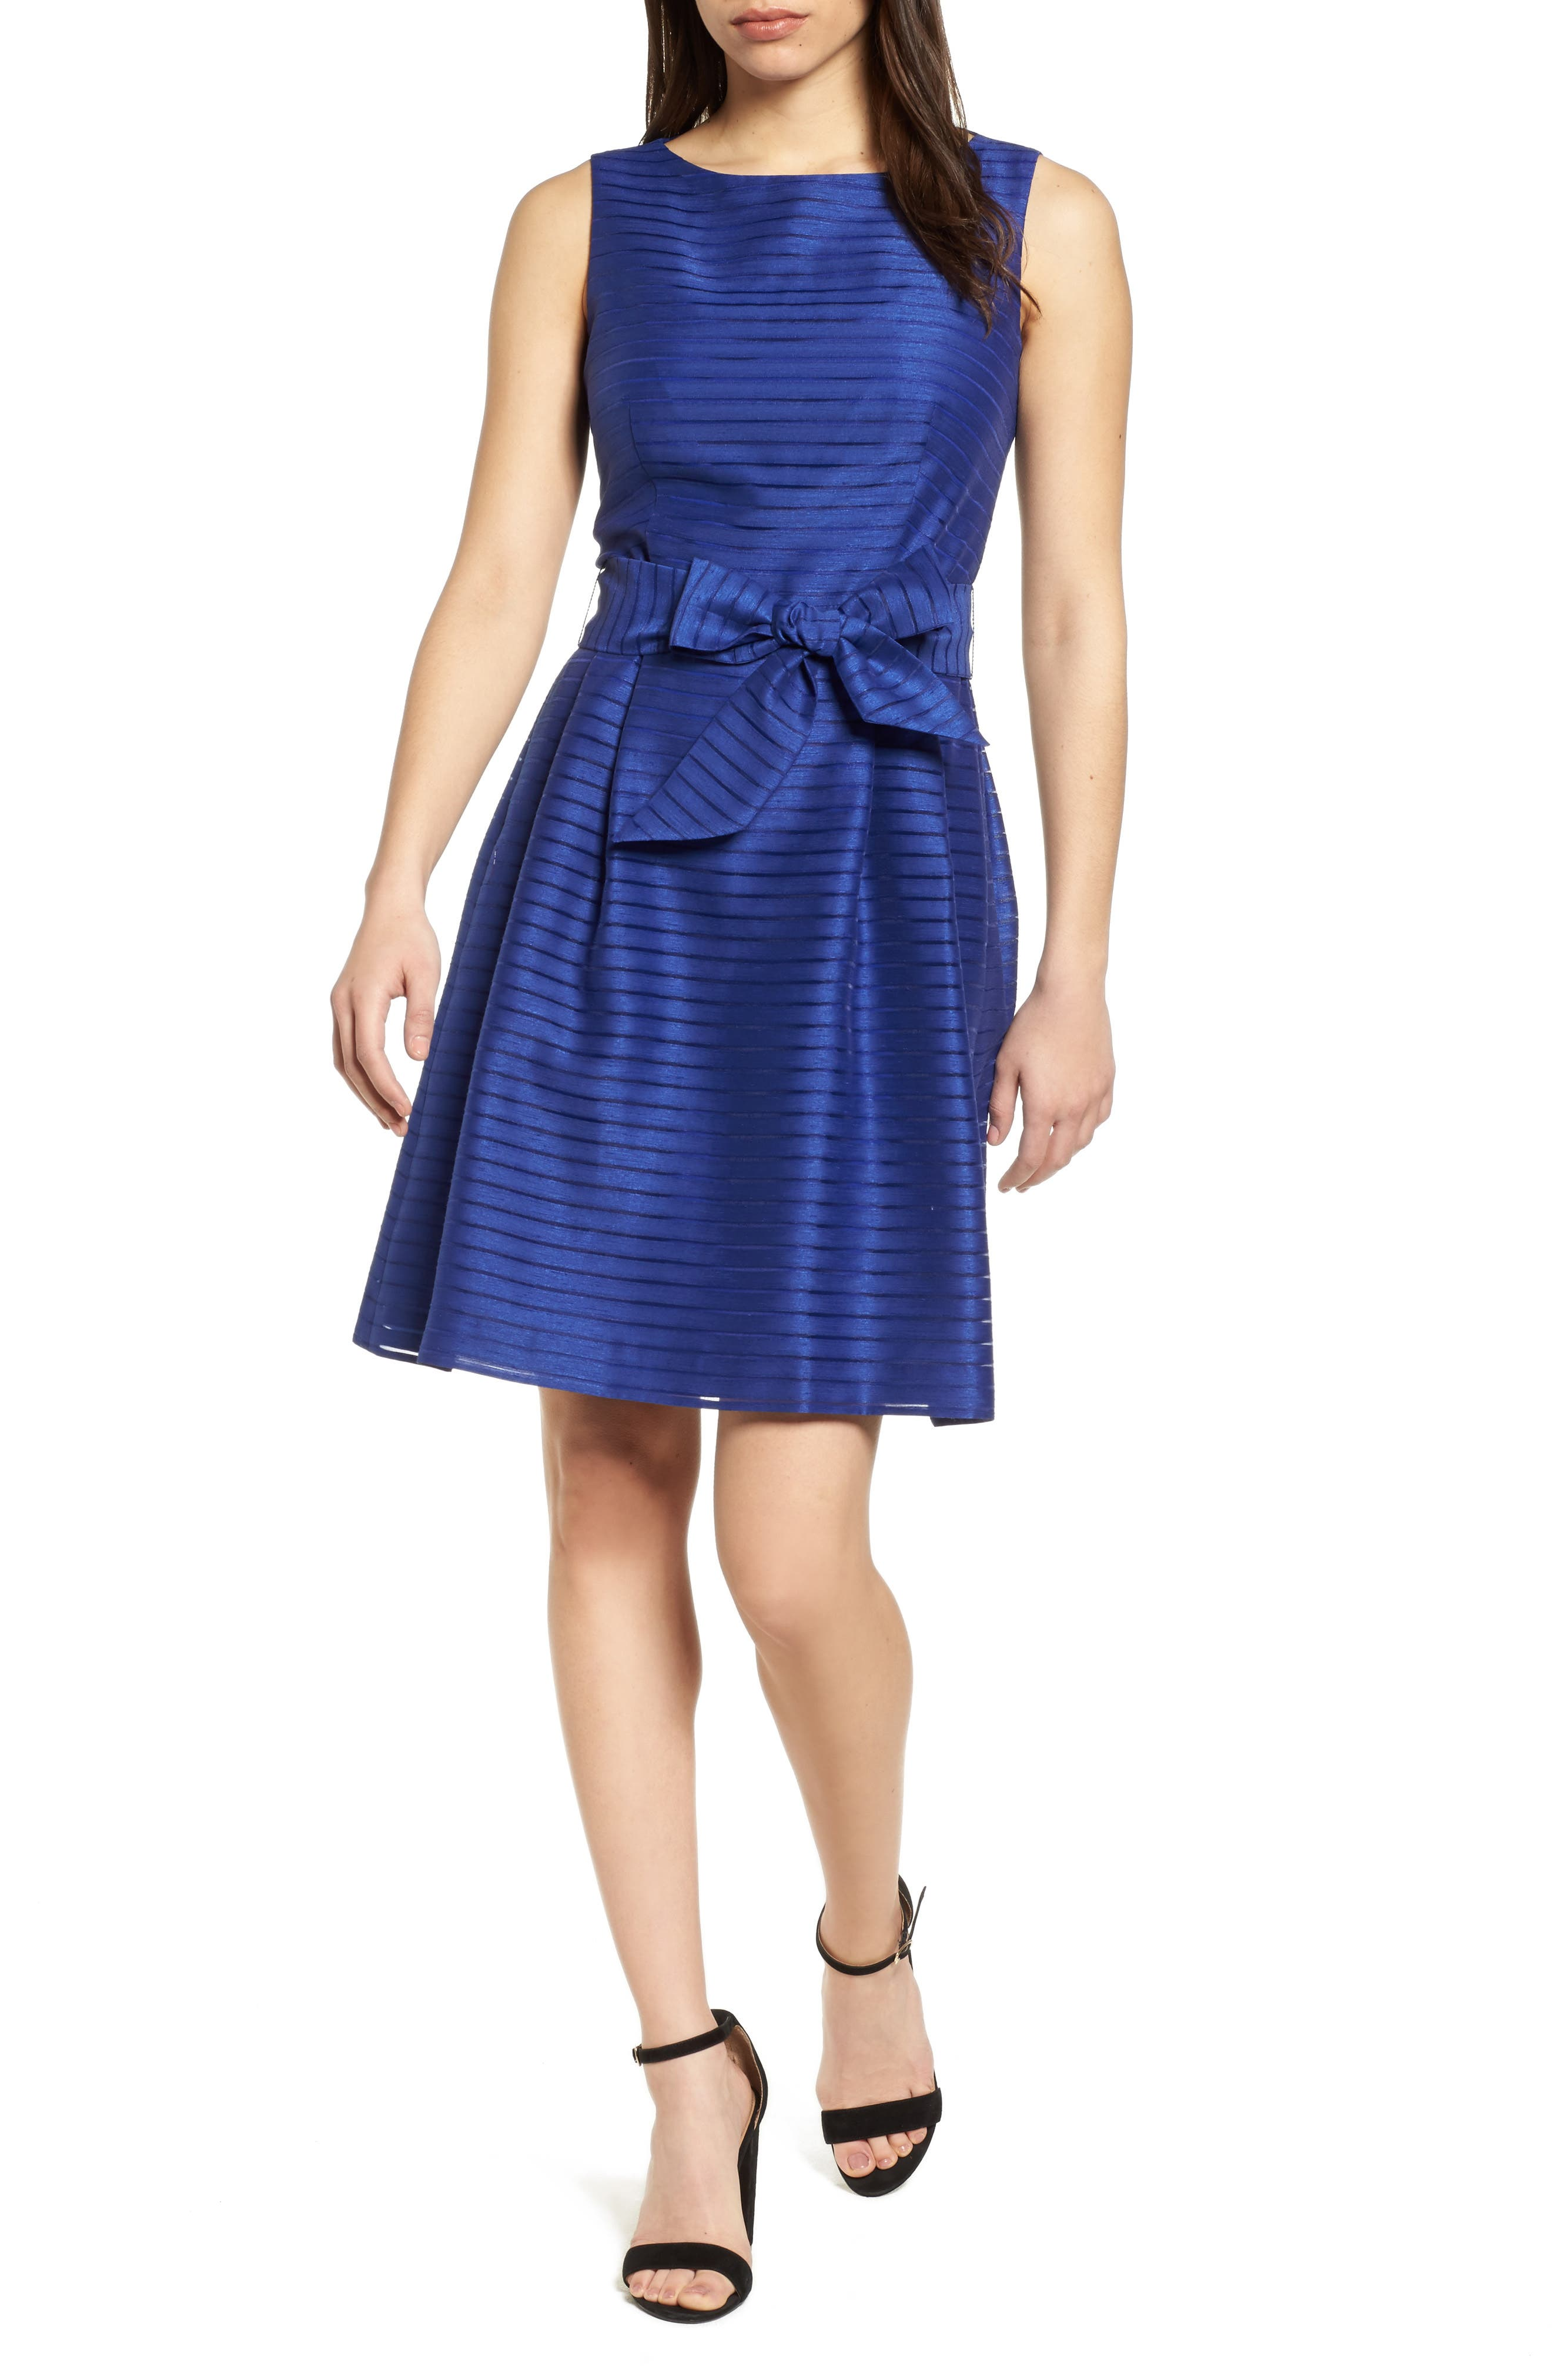 ANNE KLEIN Shadow Stripe Fit & Flare Dress, Main, color, 430